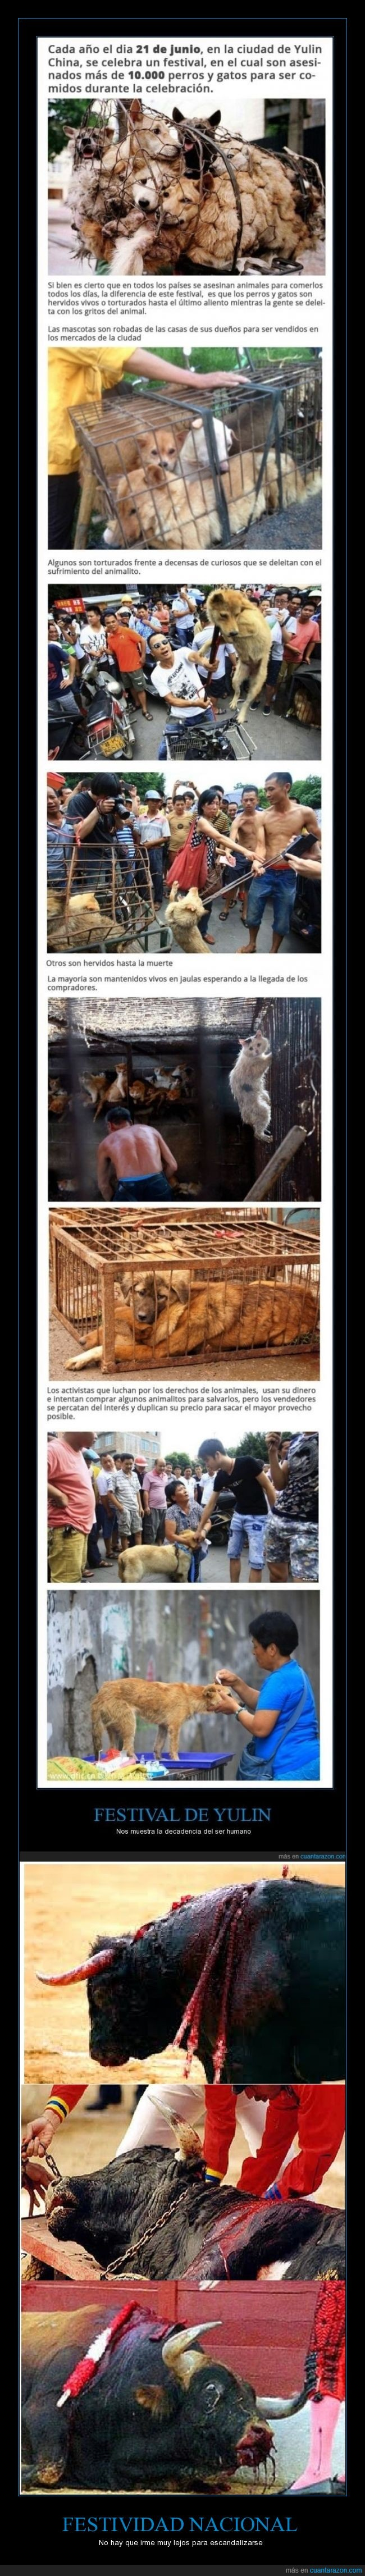 animal,barbarie,China,decadencia,España,fiesta nacional,perro,toros,Yulin